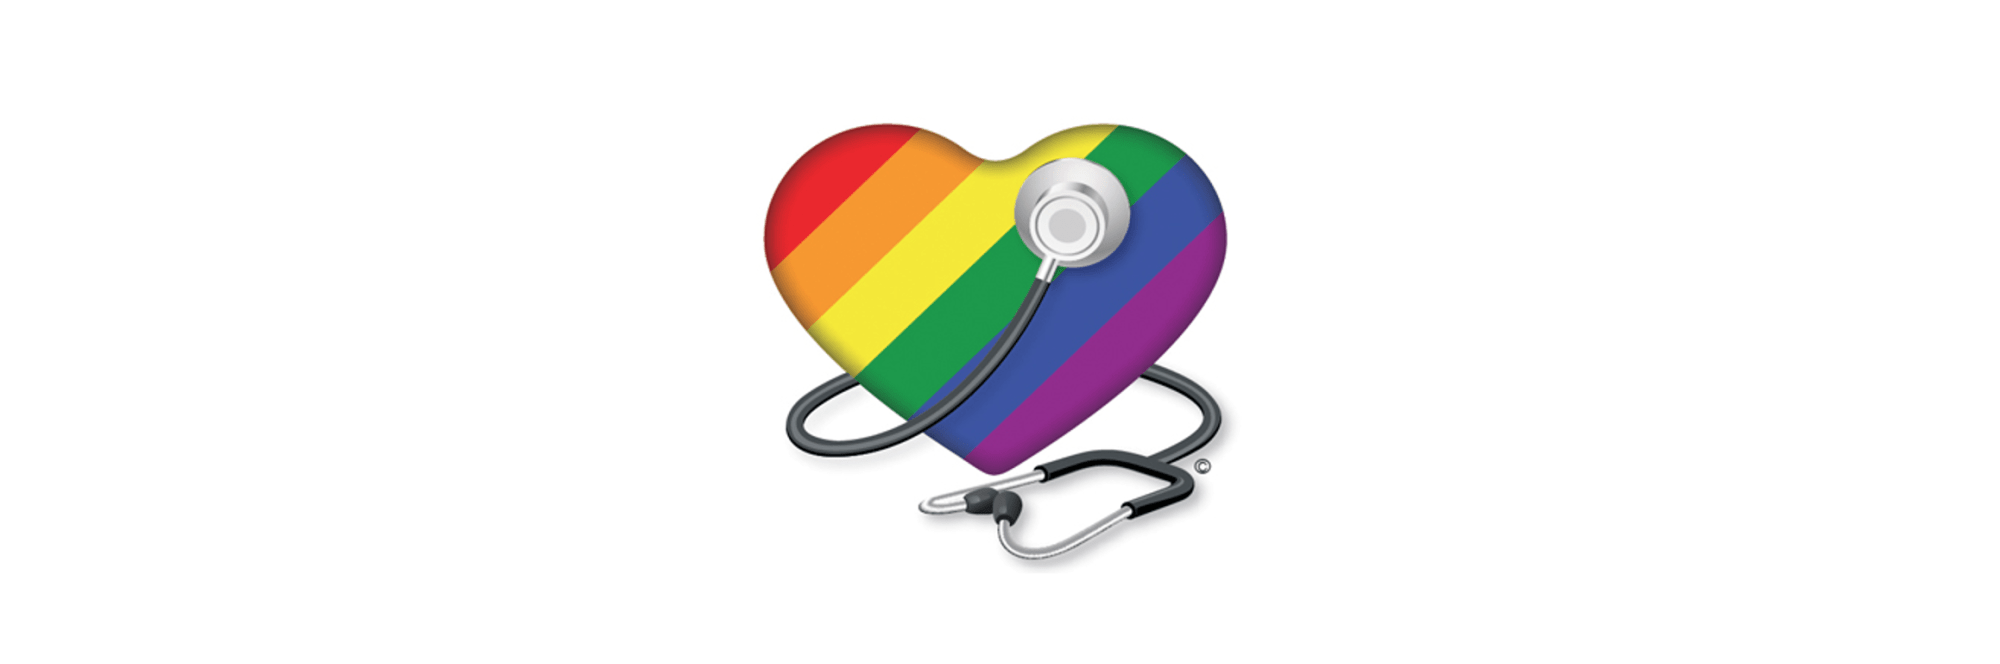 graphic of a rainbow-colored heart with a stethoscope wrapped around it